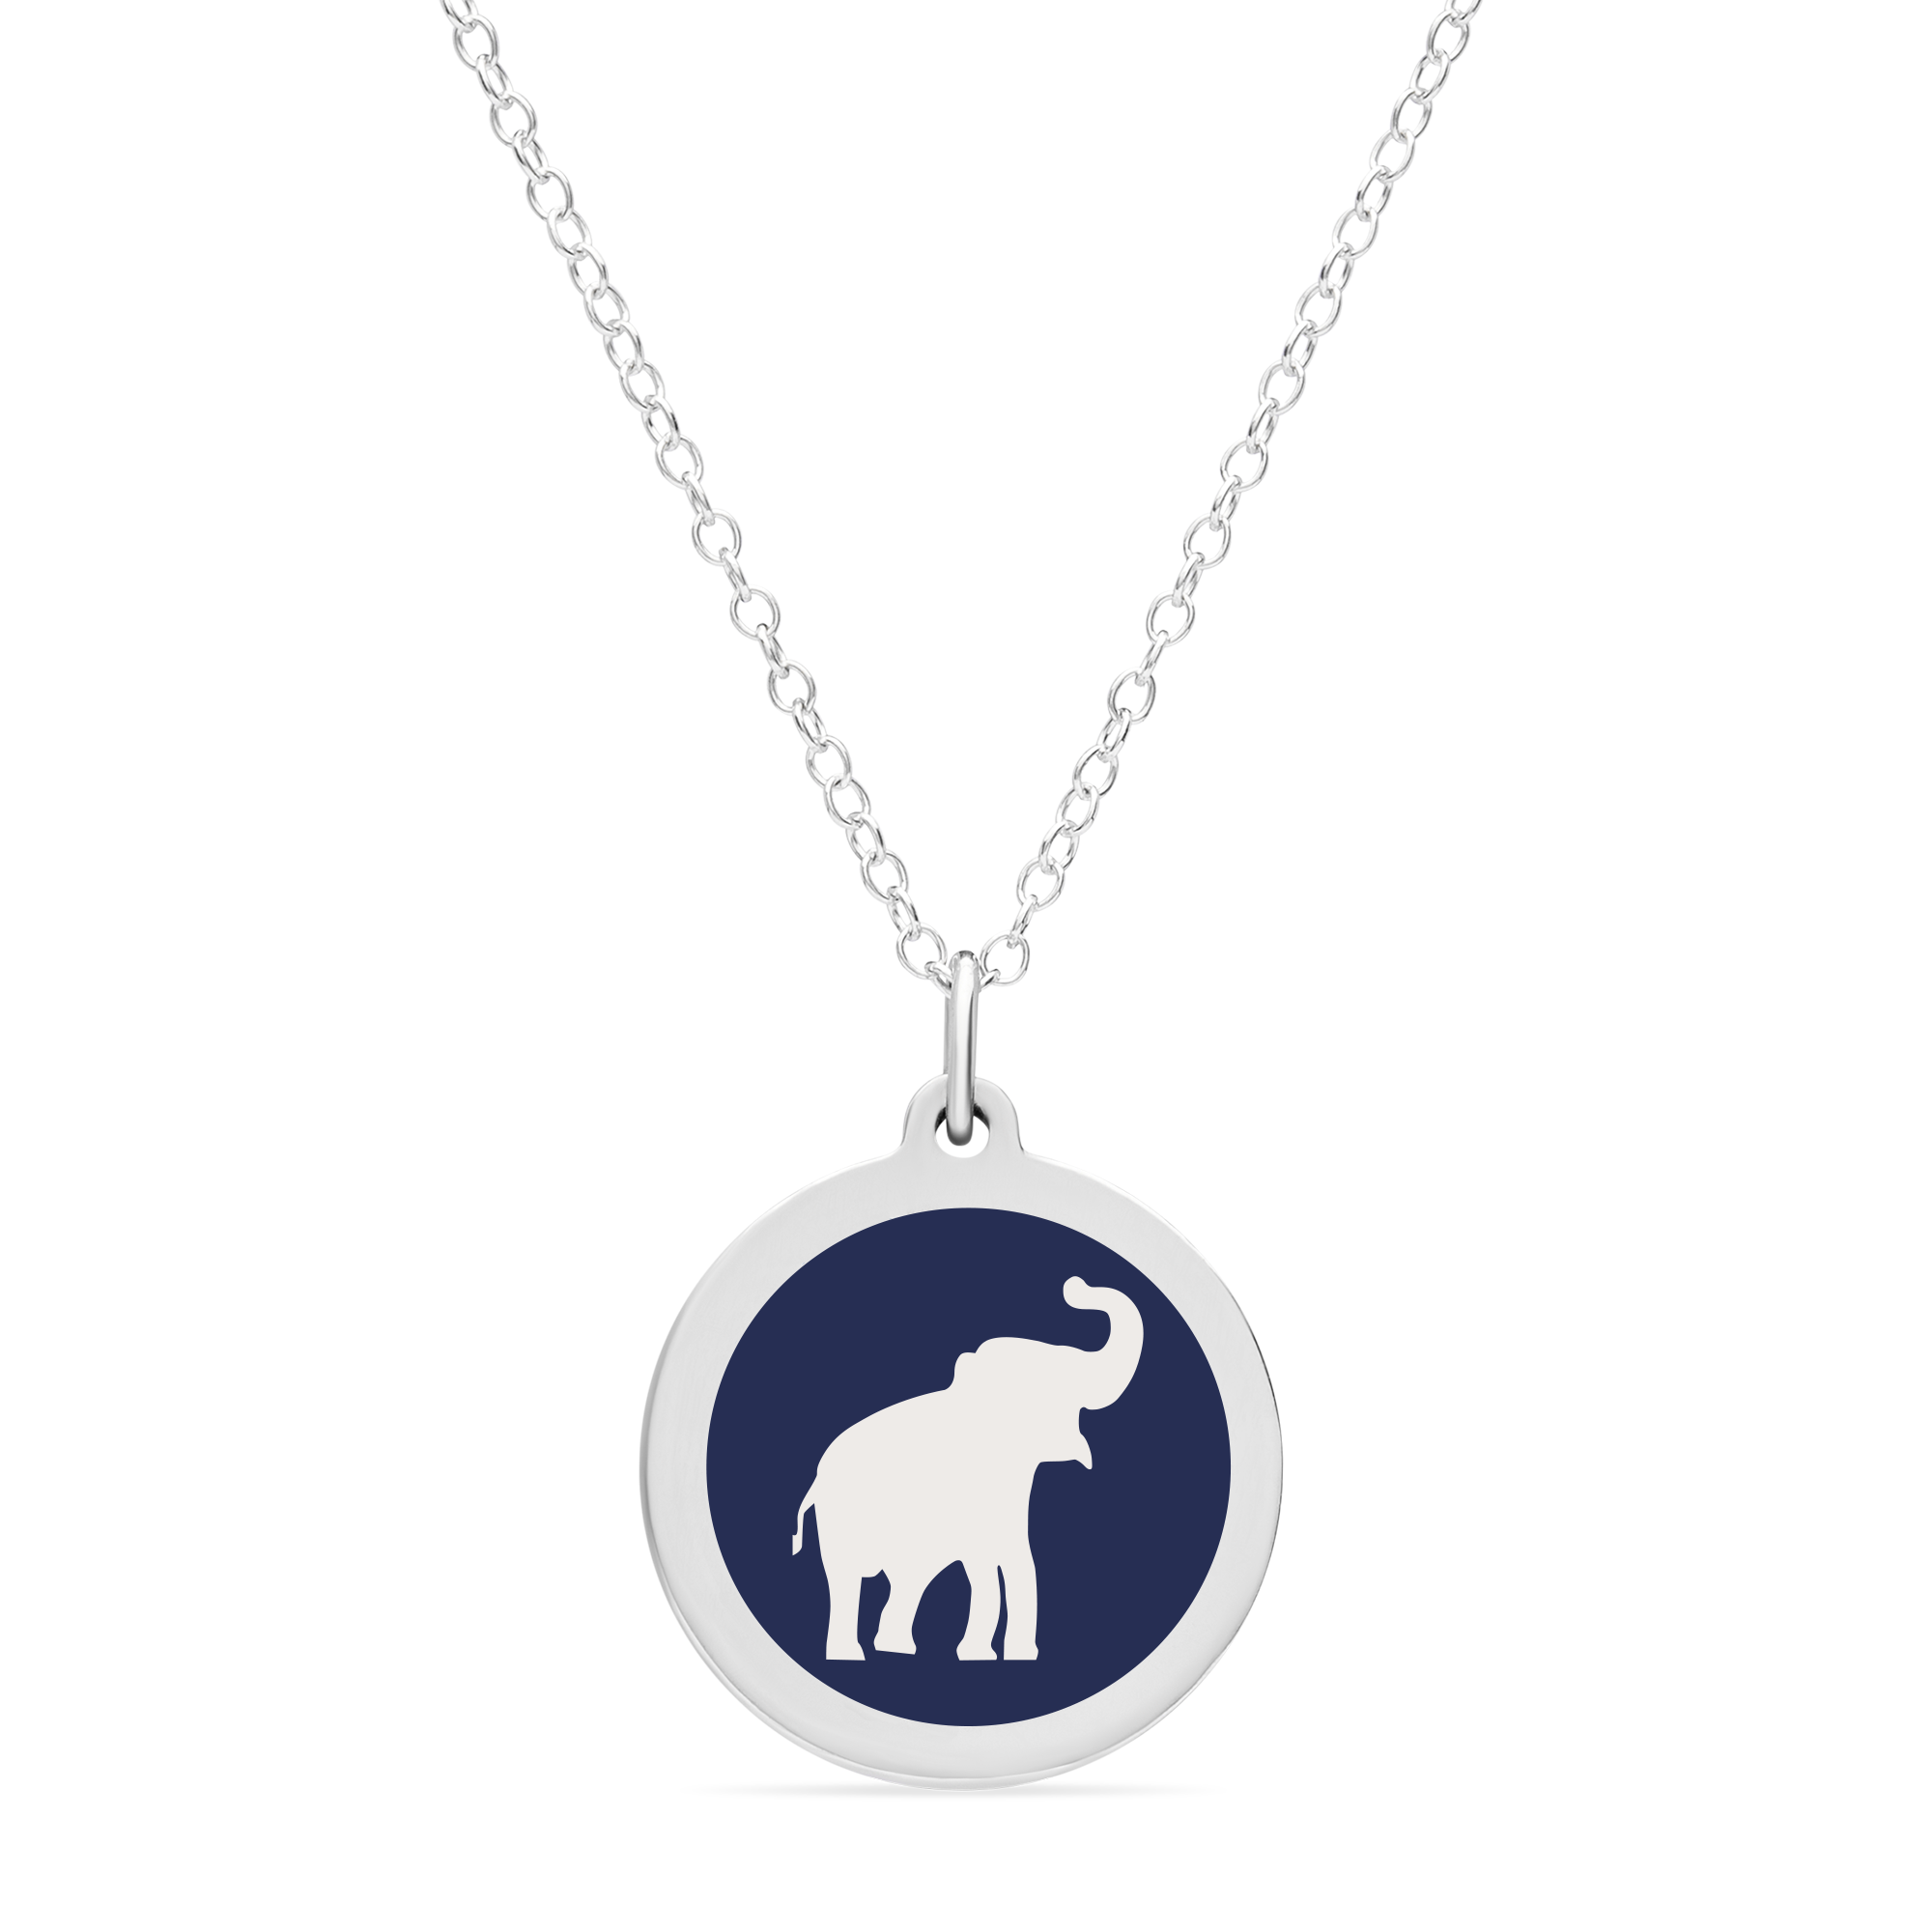 ORIGINAL ELEPHANT CHARM in sterling silver with rhodium plate